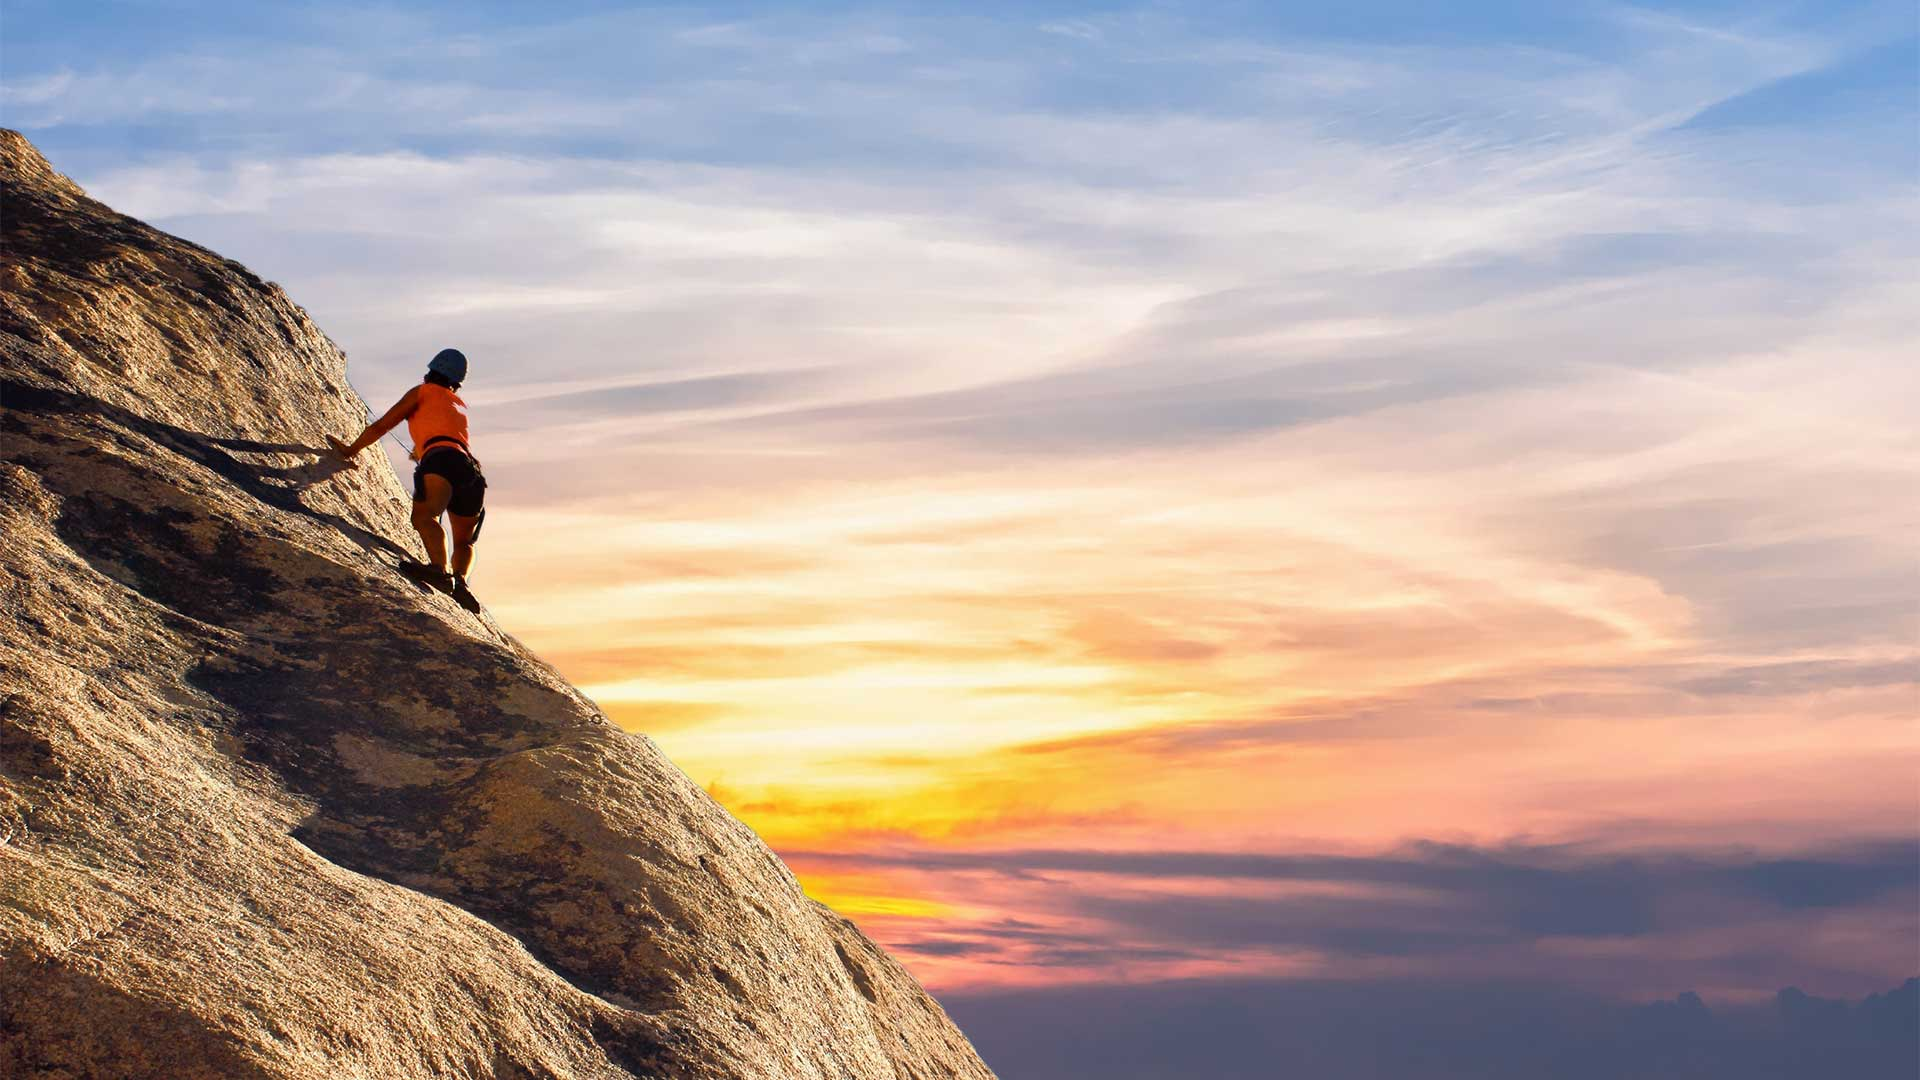 all-successful-people-have-a-mindset-of-embracing-challenge